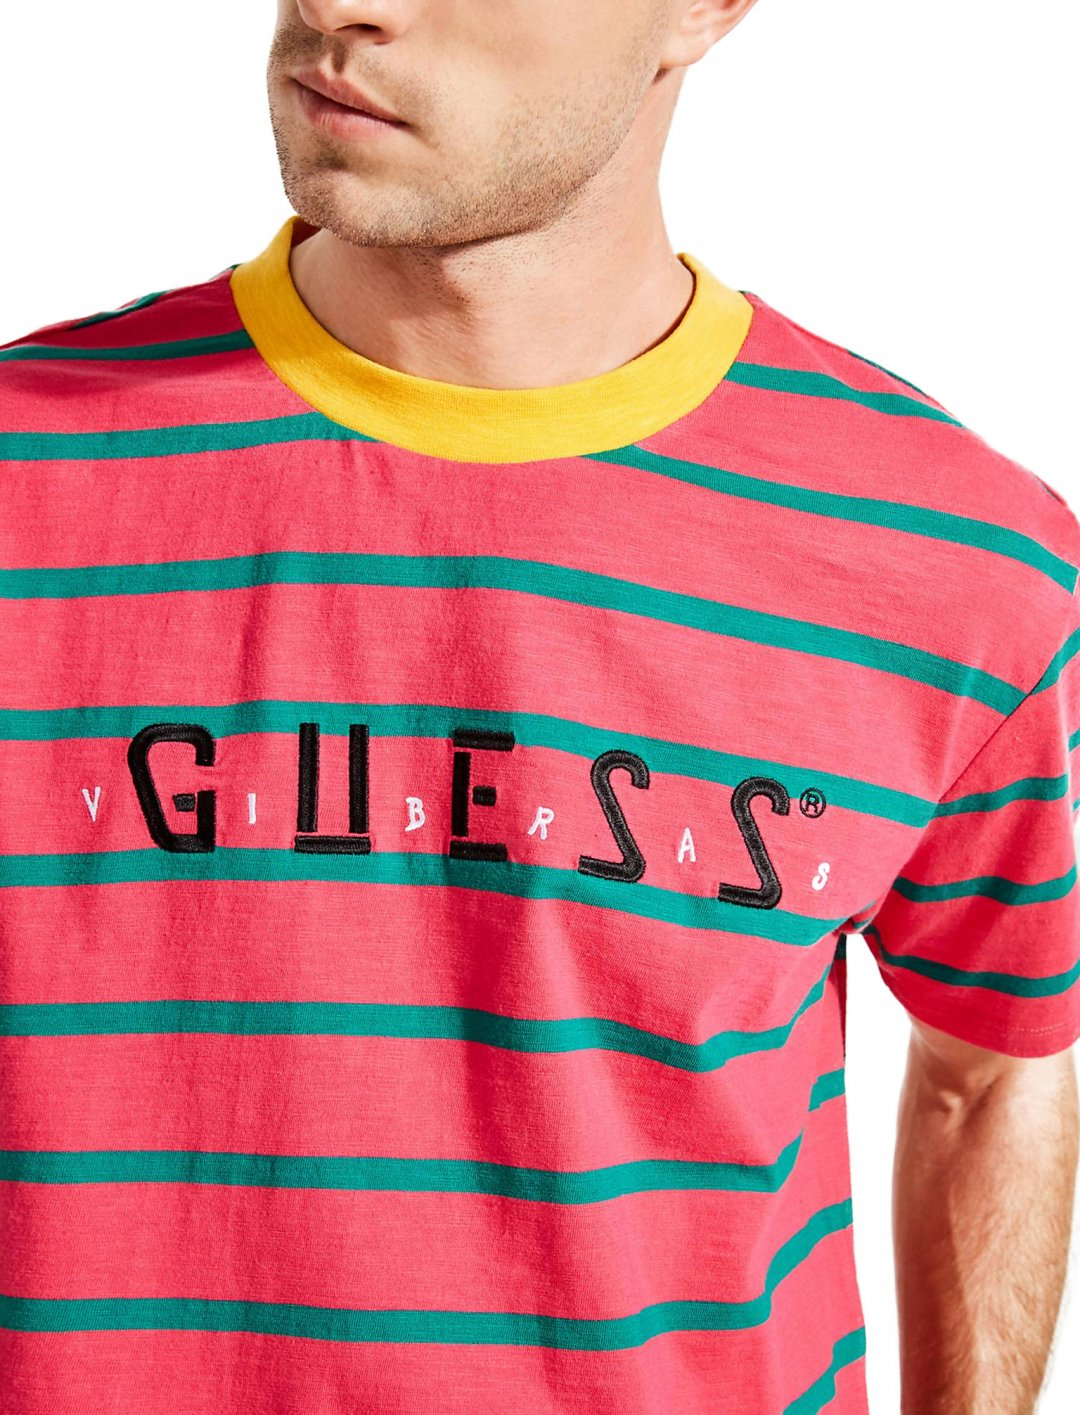 Myles' T-Shirt Clothing GUESS X J BALVIN